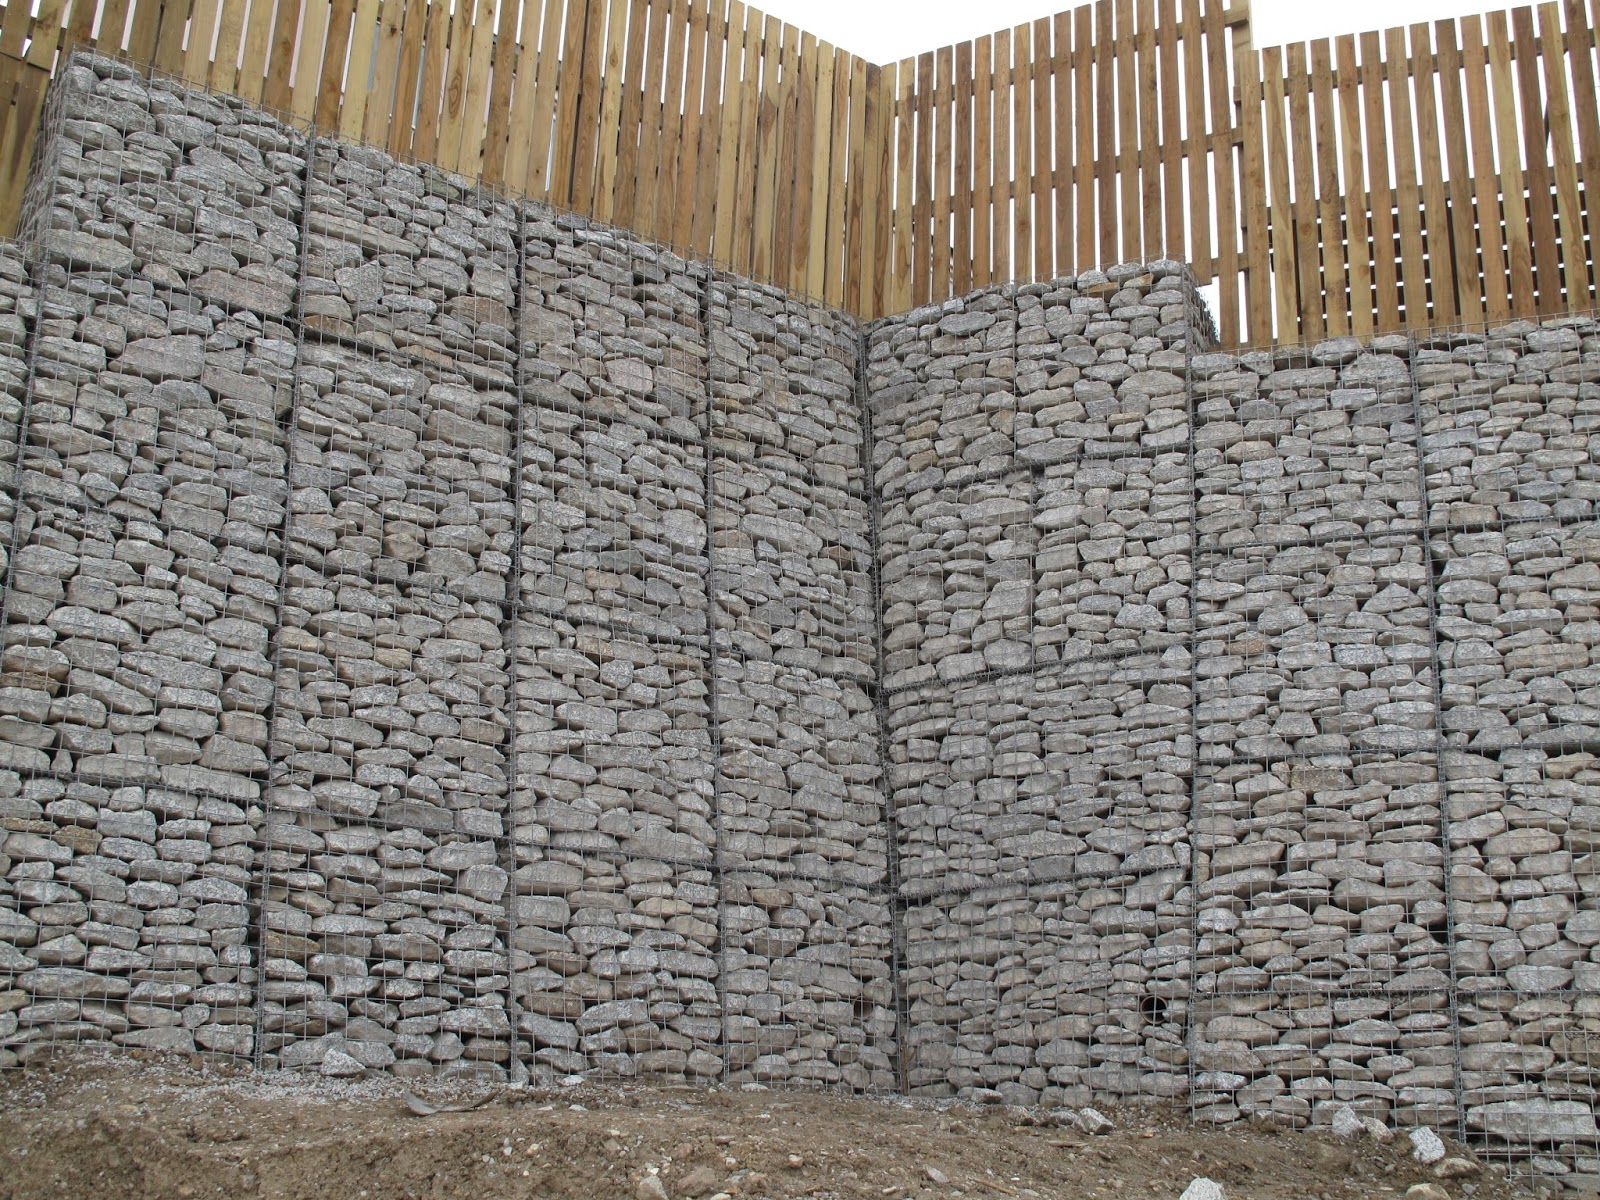 Retaining wall gabion baskets 2m x 1m x 1m cages Gabion wall design